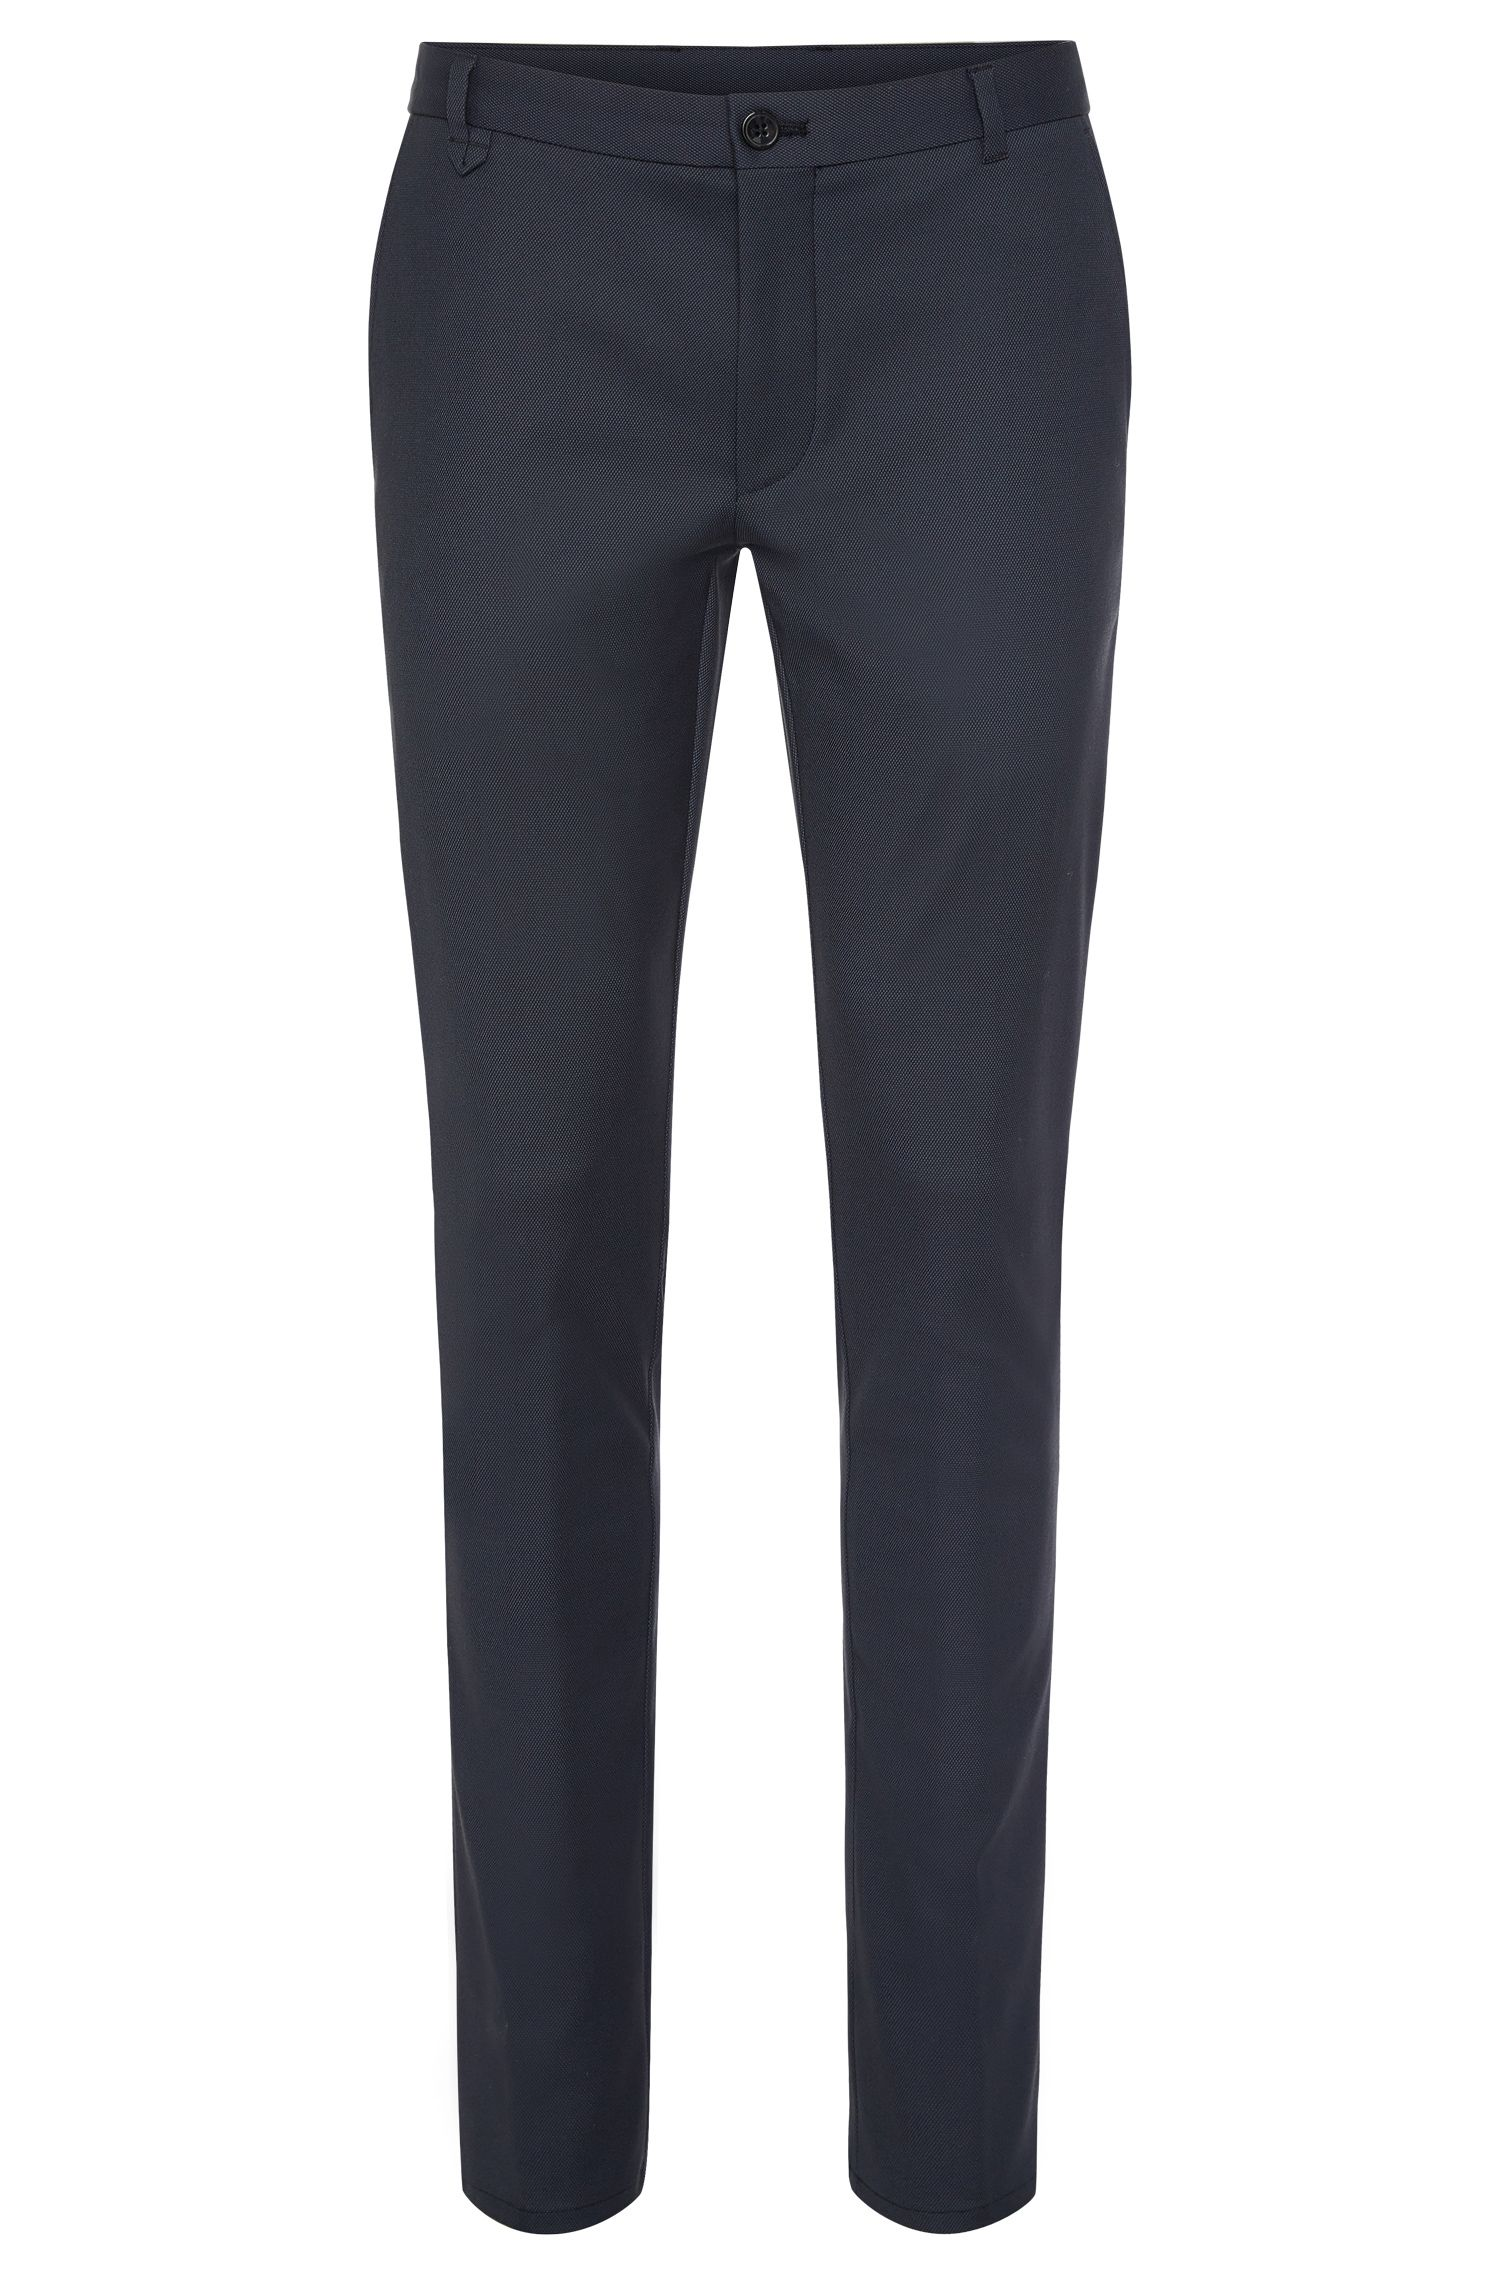 'Heldor' | Extra Slim Fit, Stretch Cotton Dress Pants